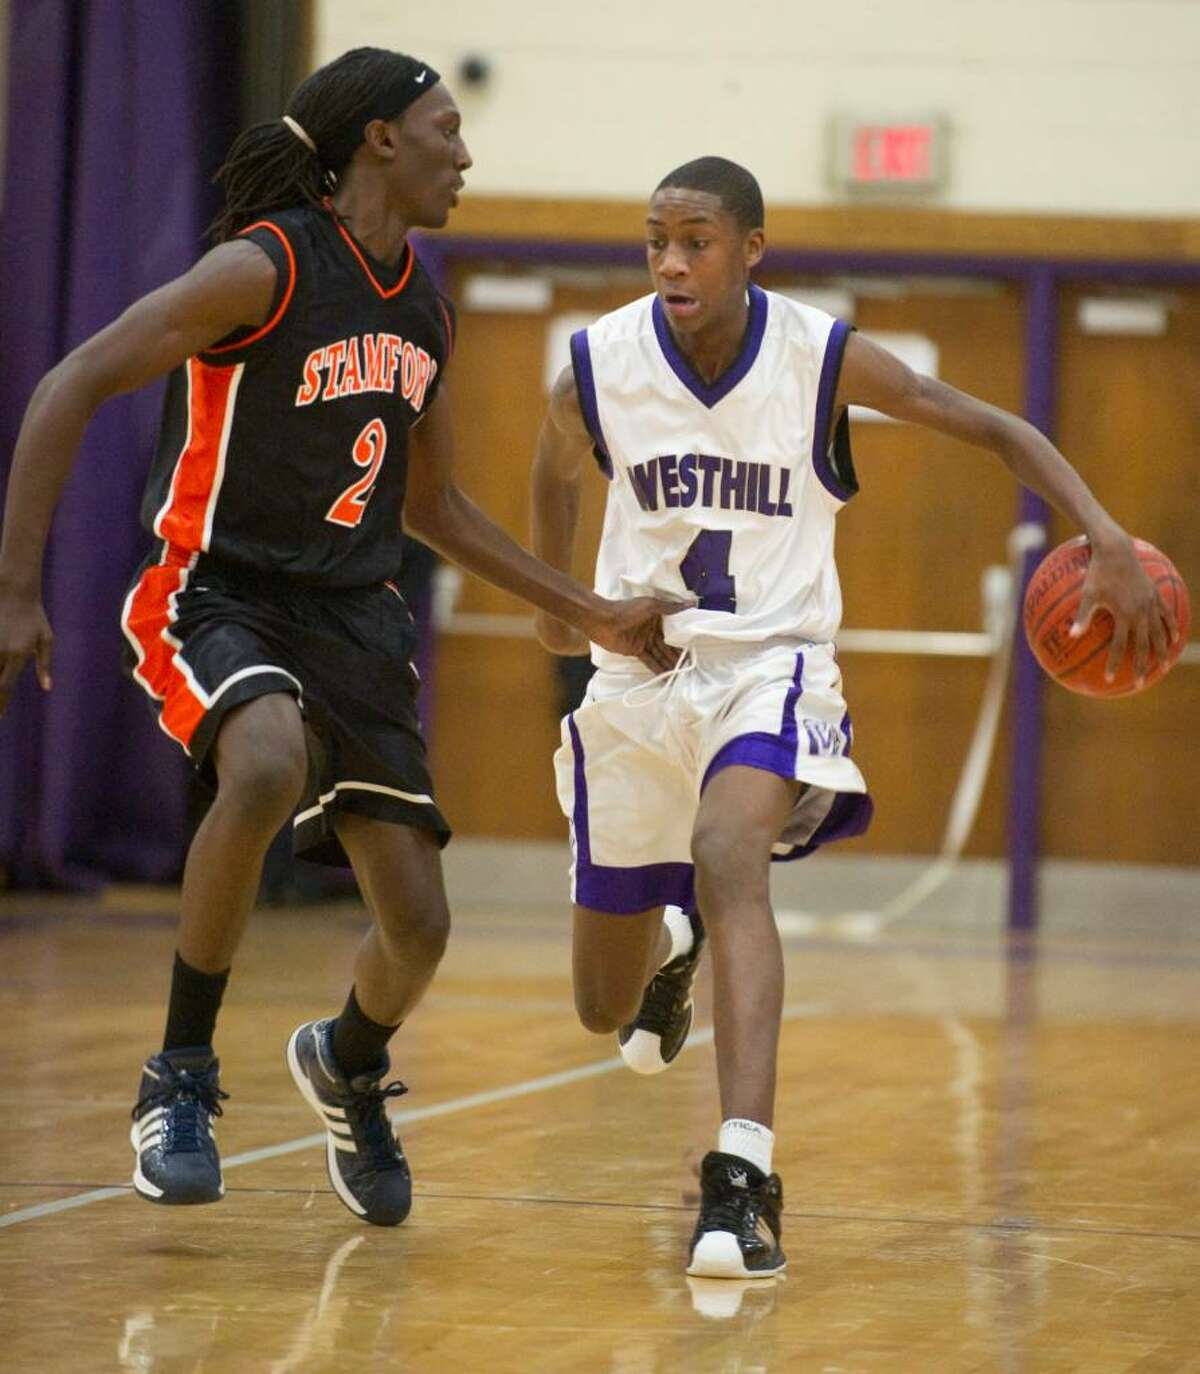 Westhill's Tim Simmons, right, and Stamford's 2, left, during an FCIAC boys basketball game at Westhill High School in Stamford, Conn. on Monday, Feb. 15, 2010. Stamford High School defeated Westhill High School 45-43.